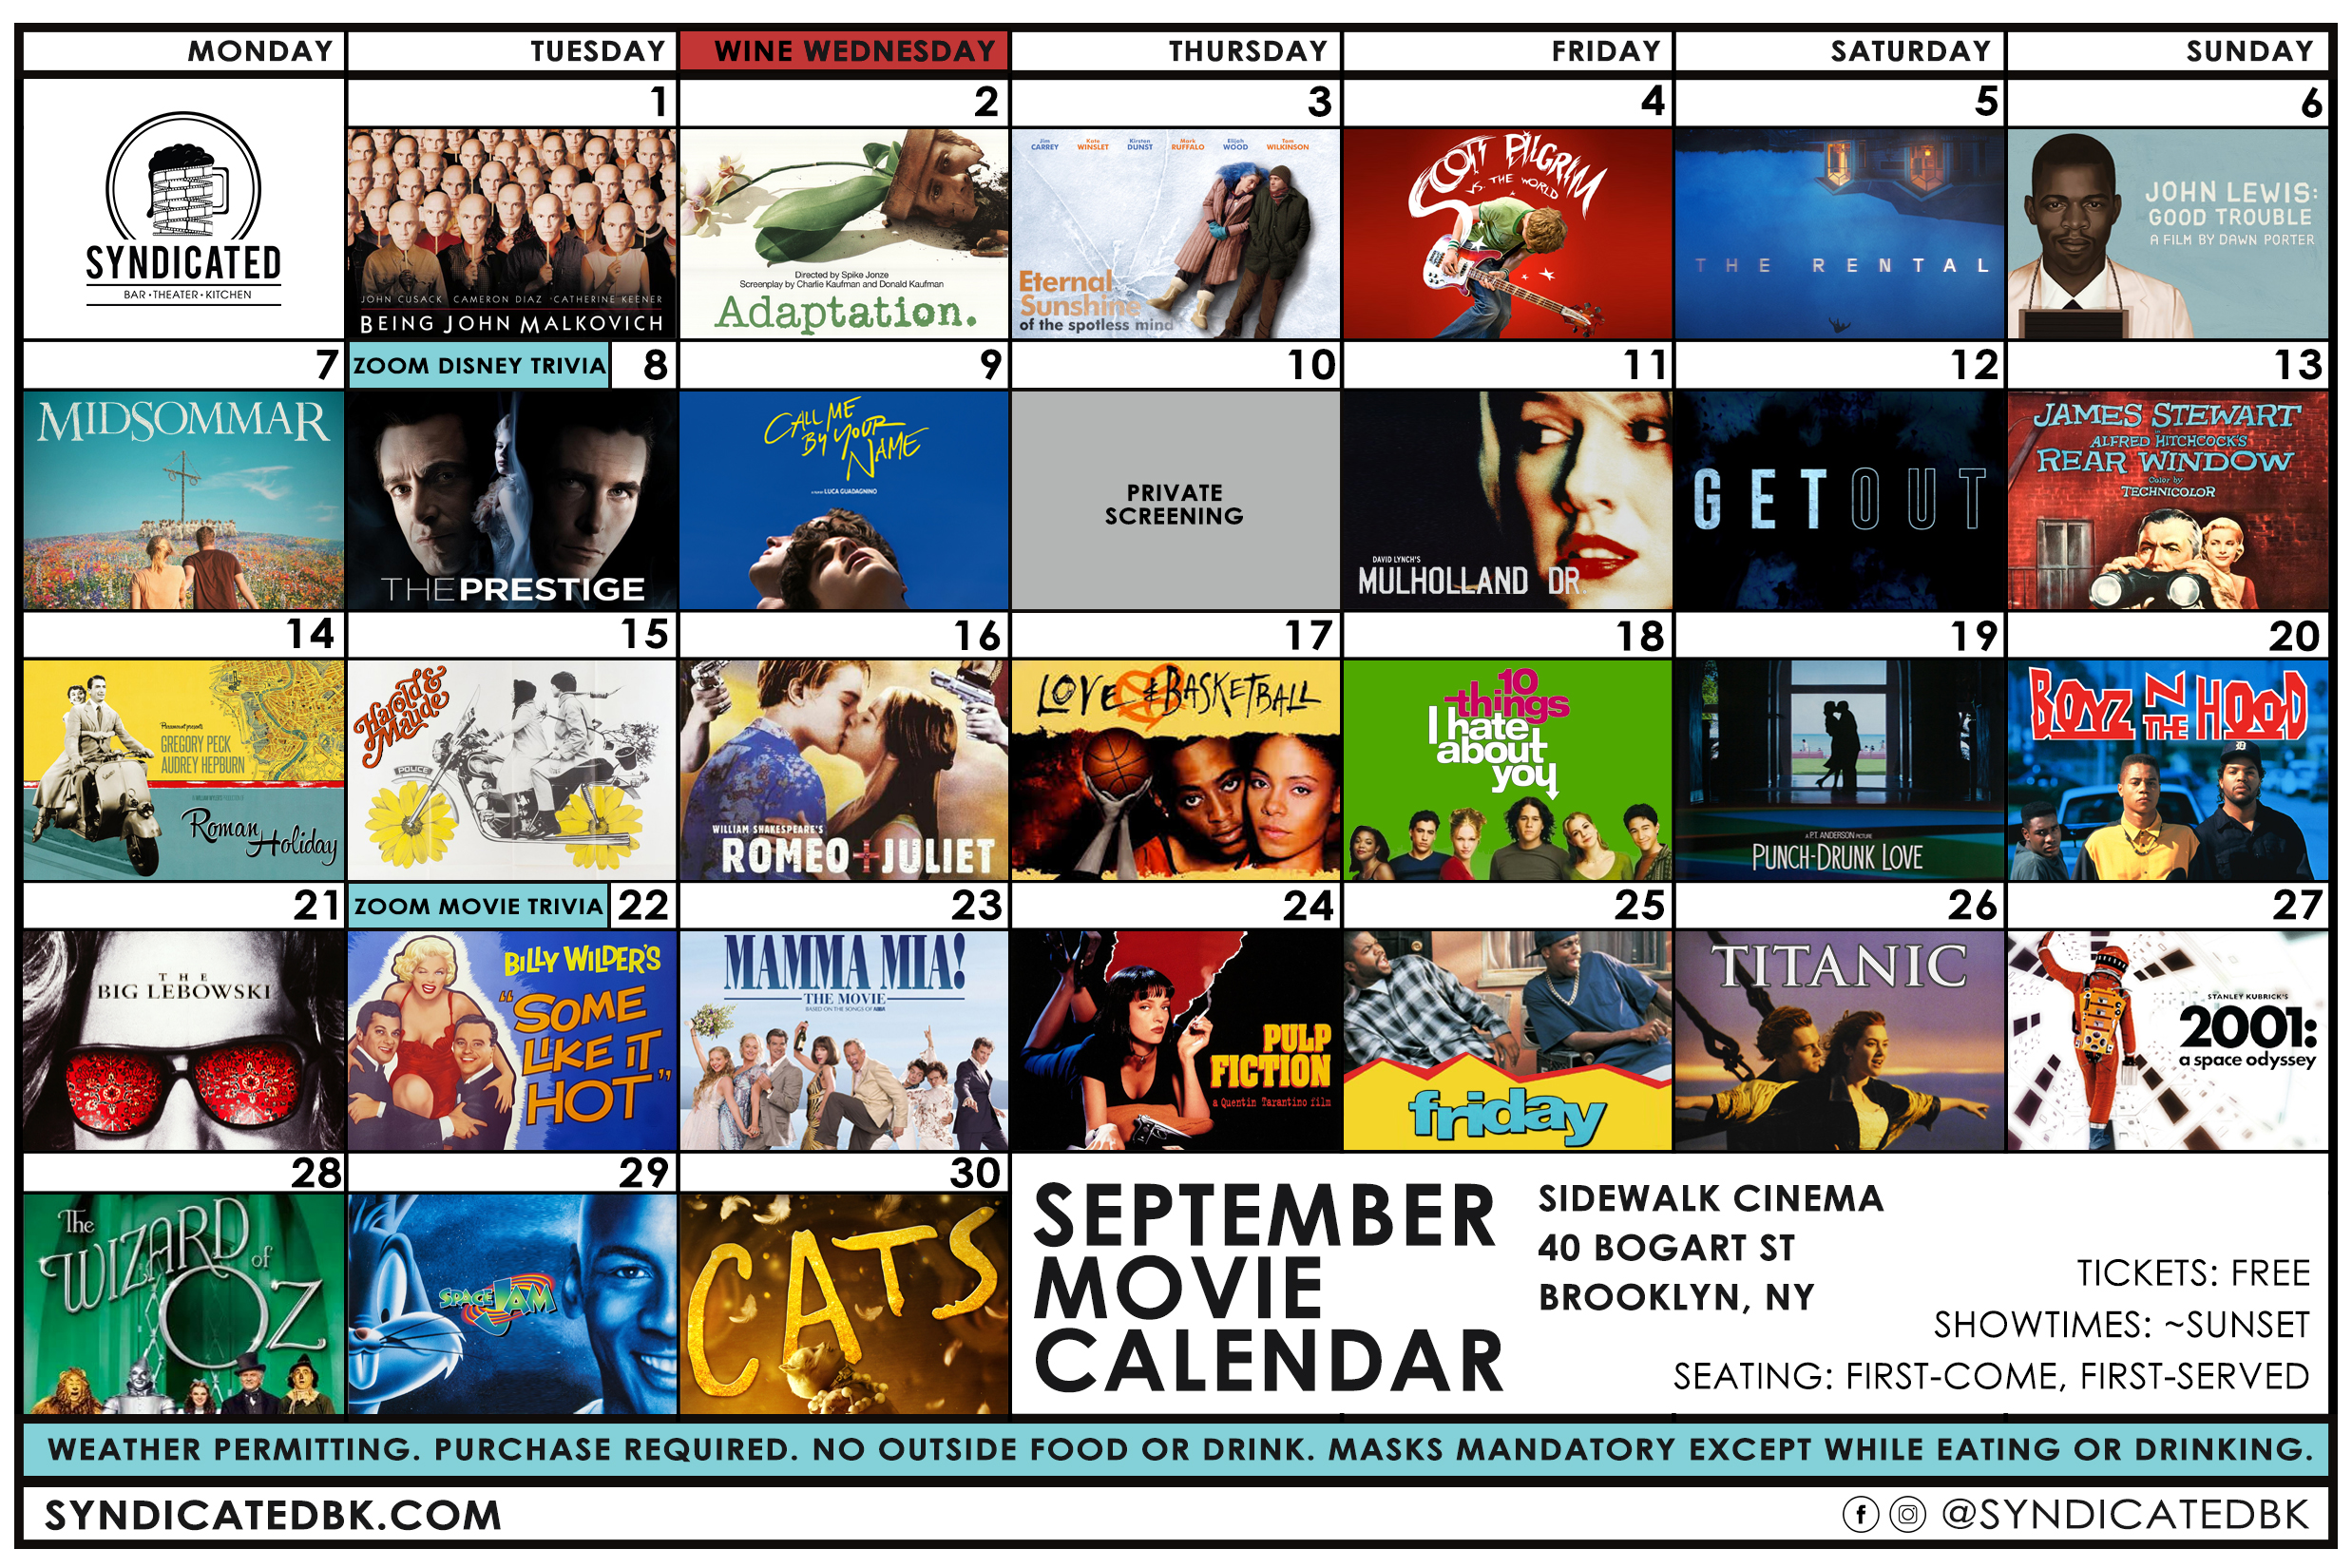 The September Sidewalk Cinema Schedule | September 1st - Being John Malkovich |  2nd - Adaptation. |  3rd - Eternal Sunshine of the Spotless Mind |  4th - Scott Pilgrim vs. The World |  5th - The Rental |  6th - John Lewis: Good Trouble |  7th - Midsommar |  8th - Zoom Disney Trivia and The Prestige |  9th - Call Me By Your Name |  10th - Private Screening |  11th - Mulholland Drive |  12th - Get Out |  13th - Rear Window |  14th - Roman Holiday |  15th - Harold & Maude |  16th - Romeo + Juliet |  17th - Love & Basketball |  18th - 10 Things I Hate About You |  19th - Punch Drunk Love |  20th - Boyz N The Hood |  21st - The Big Lebowski |  22nd - Zoom Movie Trivia and Some Like It Hot |  23rd - Mamma Mia! |  24th - Pulp Fiction |  25th - Friday |  26th - Titanic |  27th - 2001: A Space Odyssey |  28th - The Wizard of Oz |  29th - Space Jam |  30th - Cats